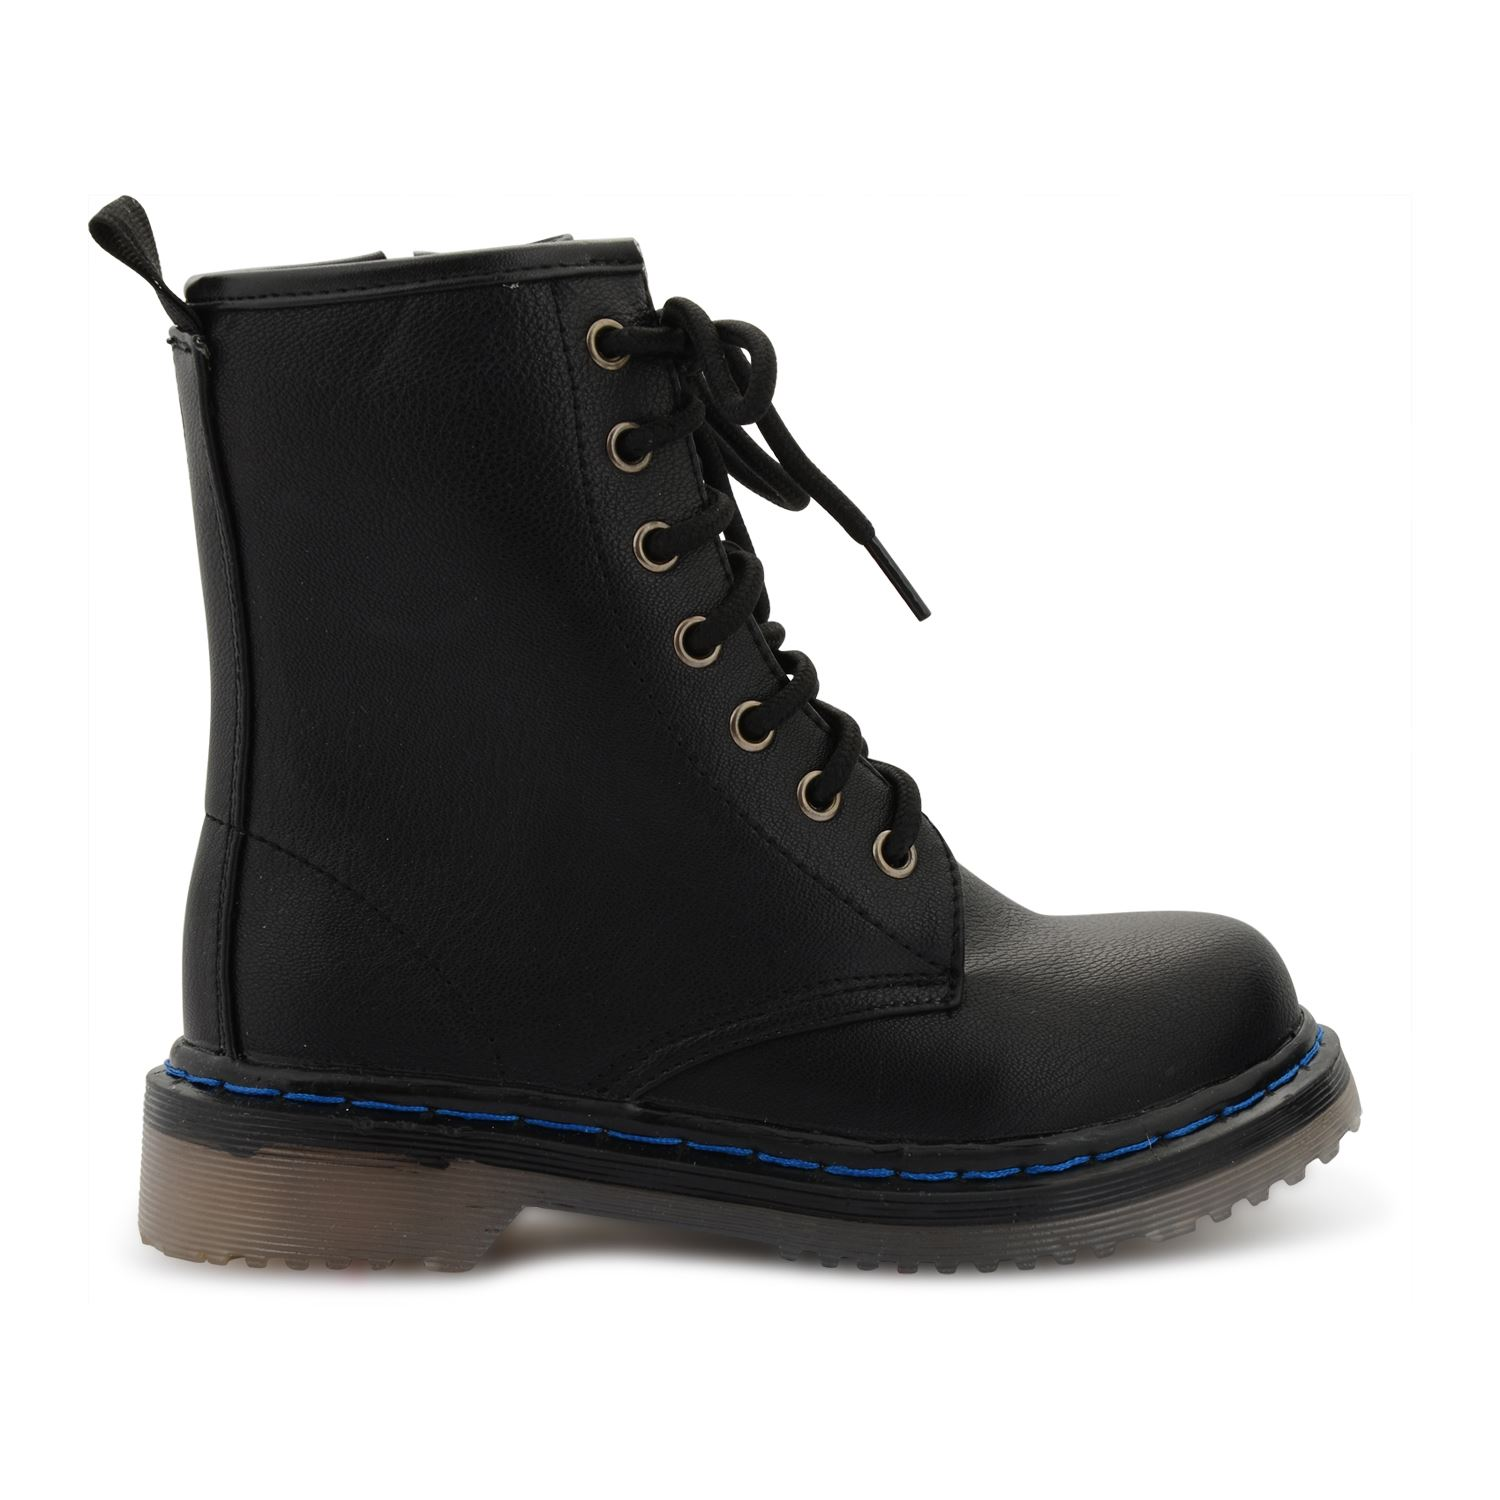 Combat Boots For Boys mHy2vnye